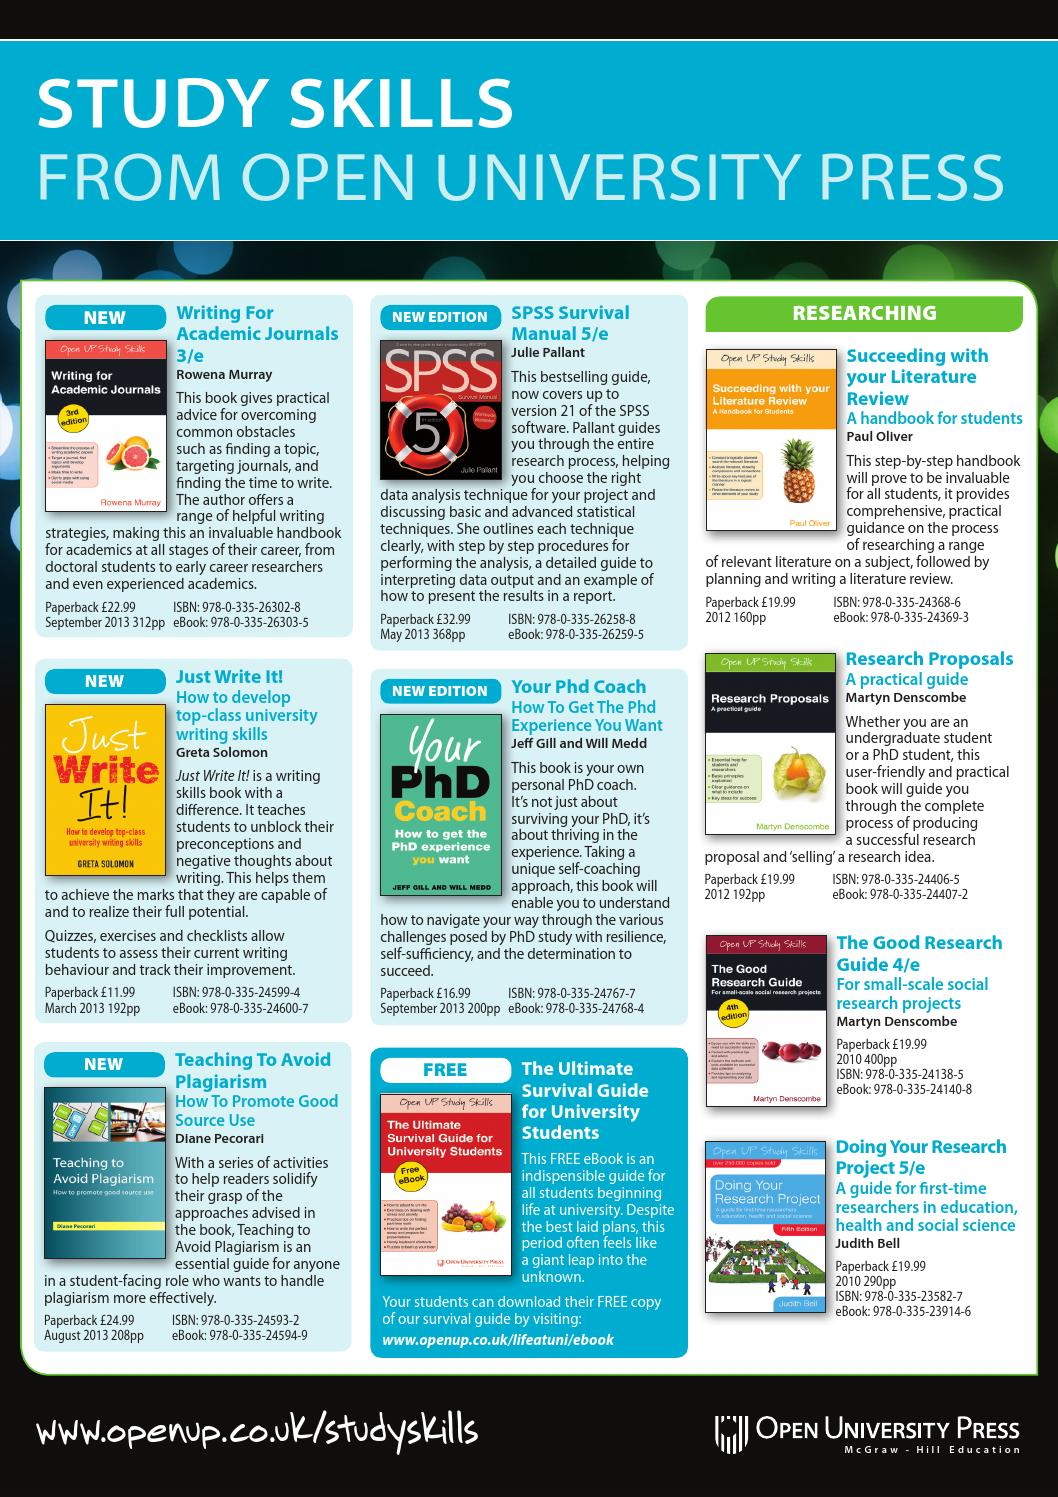 Study skills brochure 2013 by open university press issuu fandeluxe Choice Image